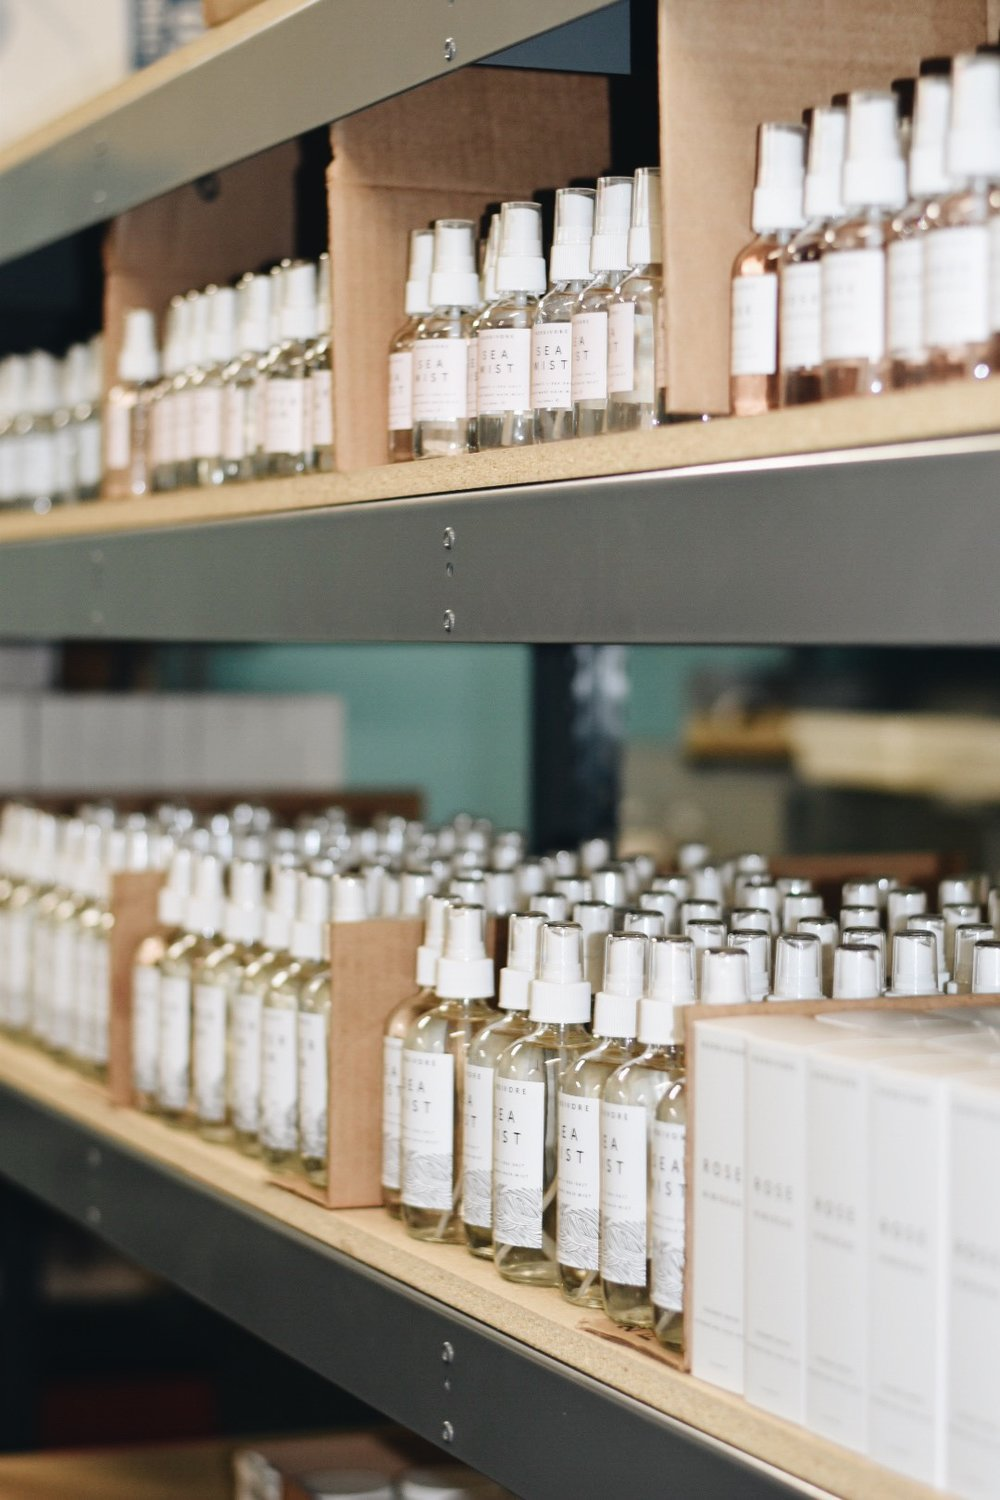 This is where your favorite Herbivore products live before they're shipped off